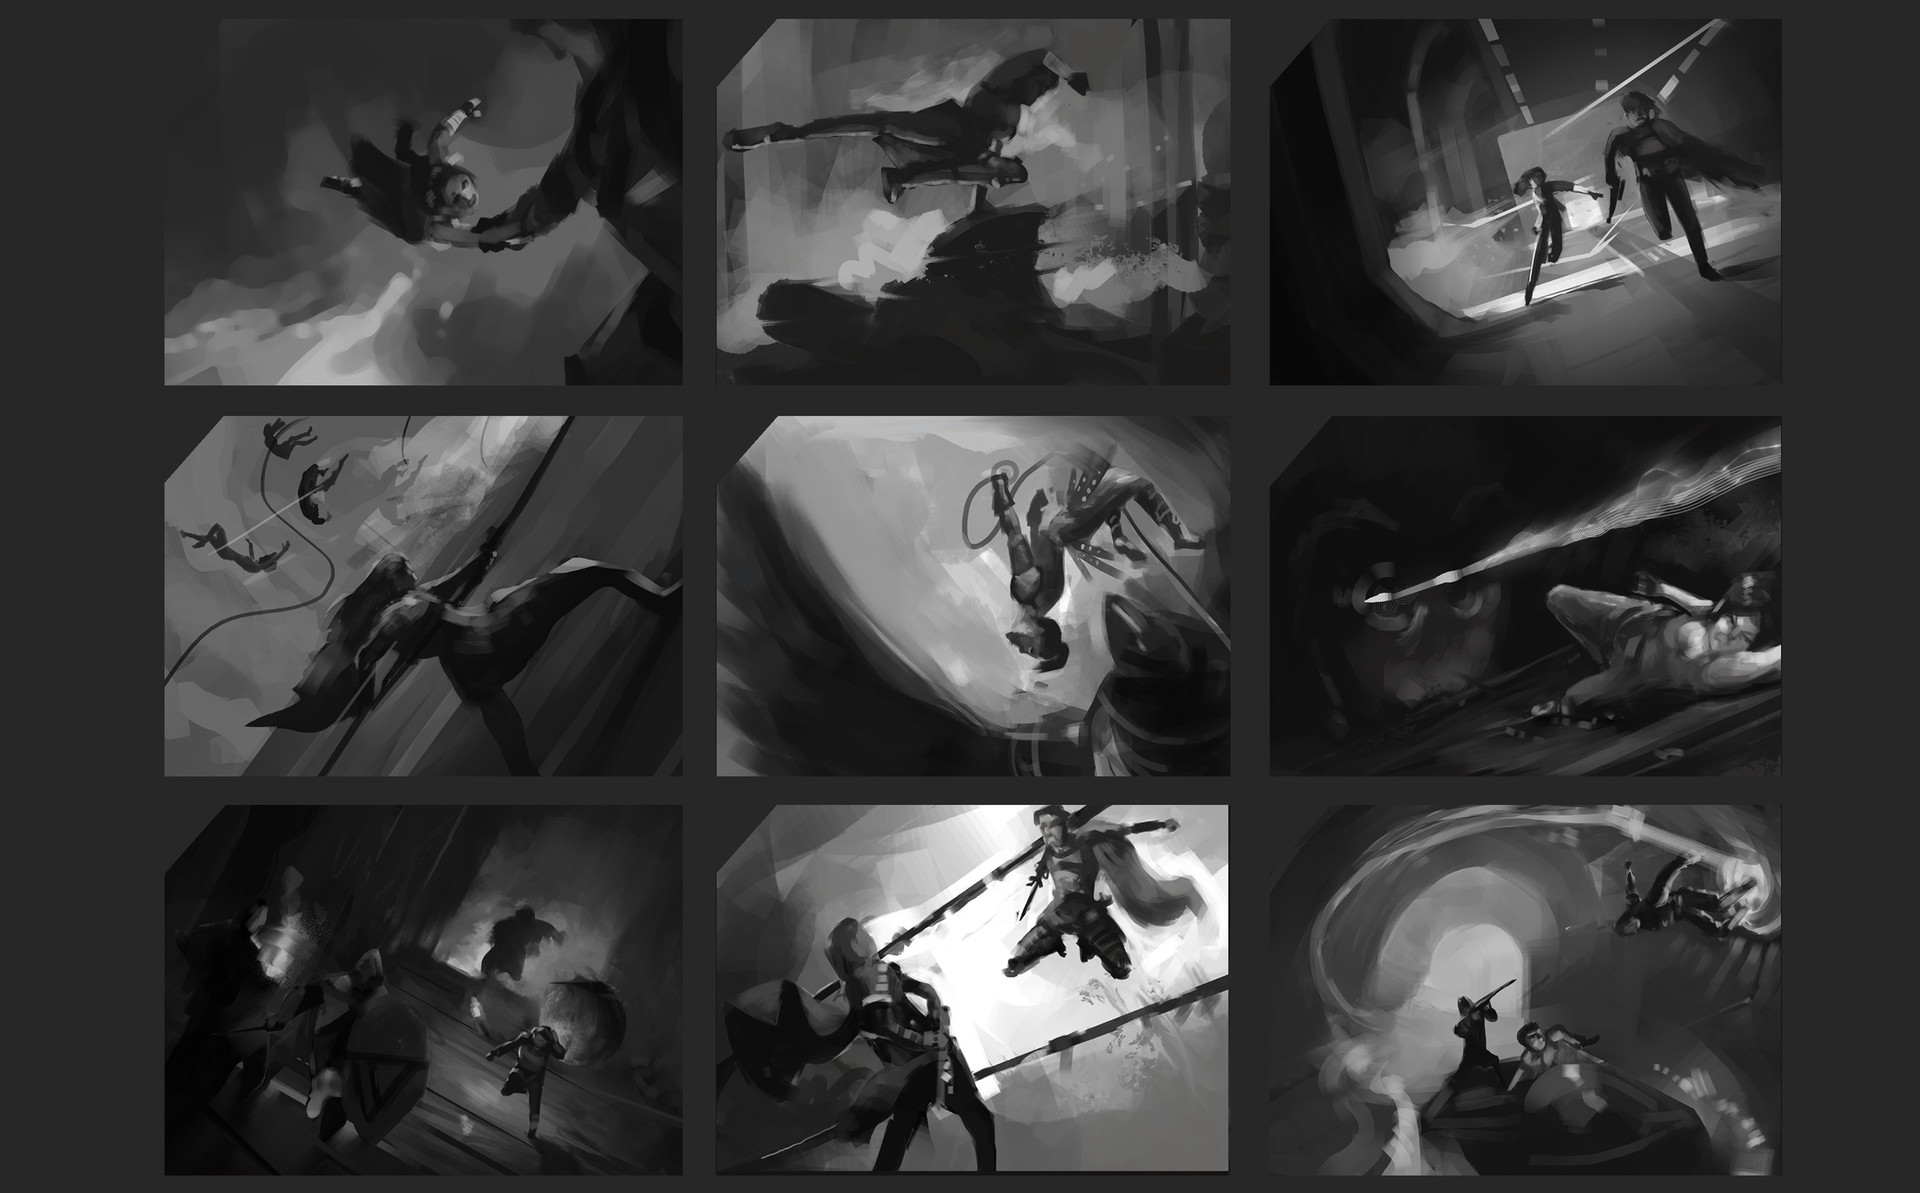 I wanted some more action and dynamics in my portfolio.